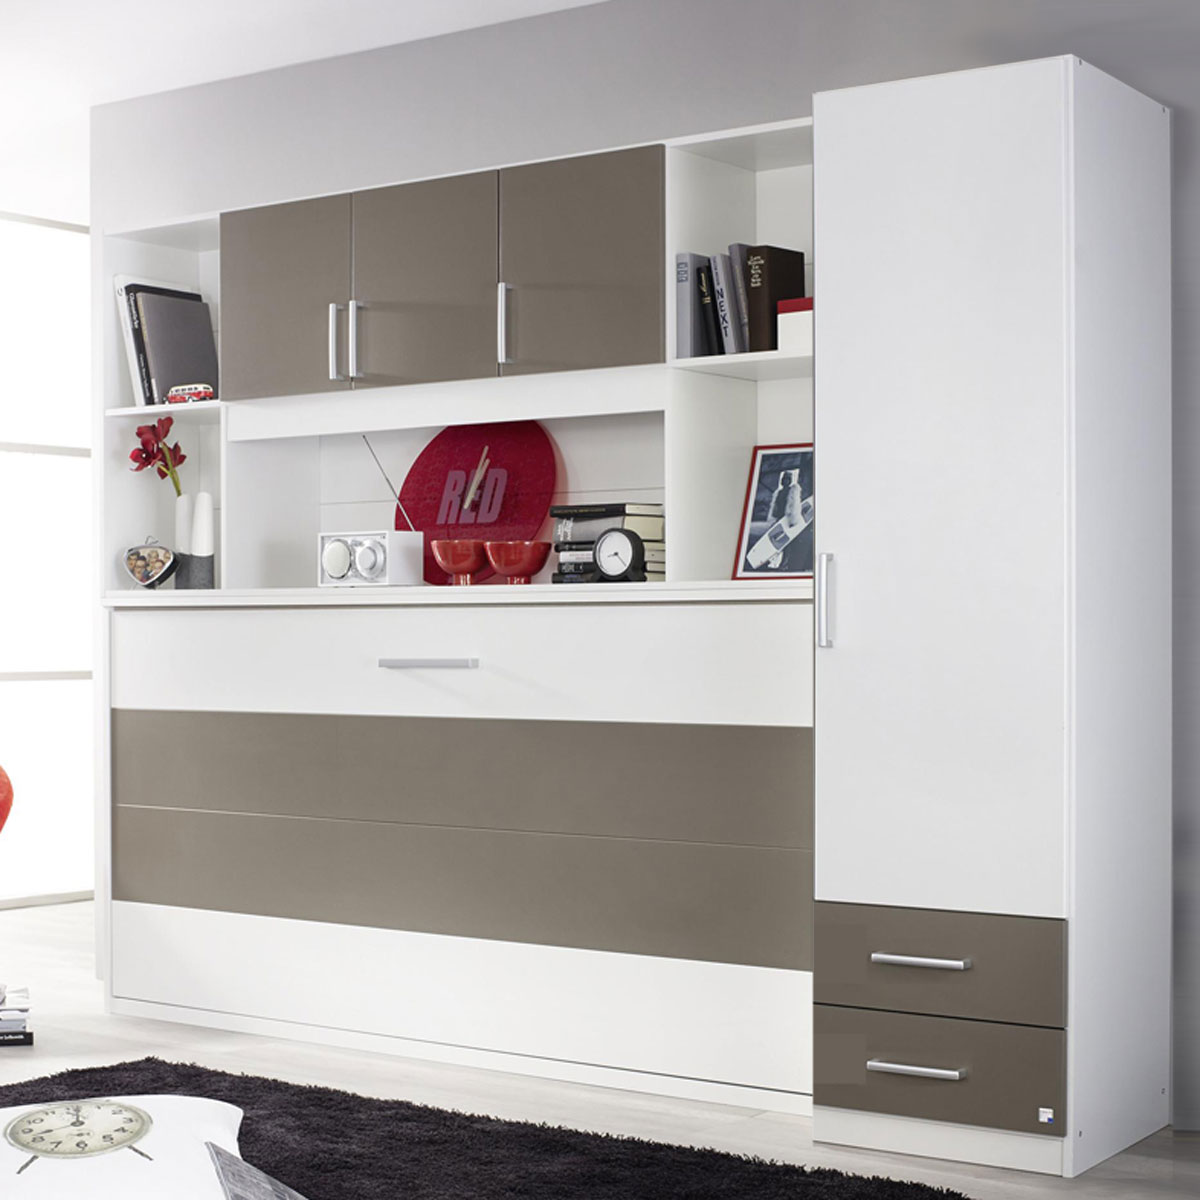 Kinderzimmer Regal Schrankbett Set Albero Kleiderschrank Regal 90x200cm 4